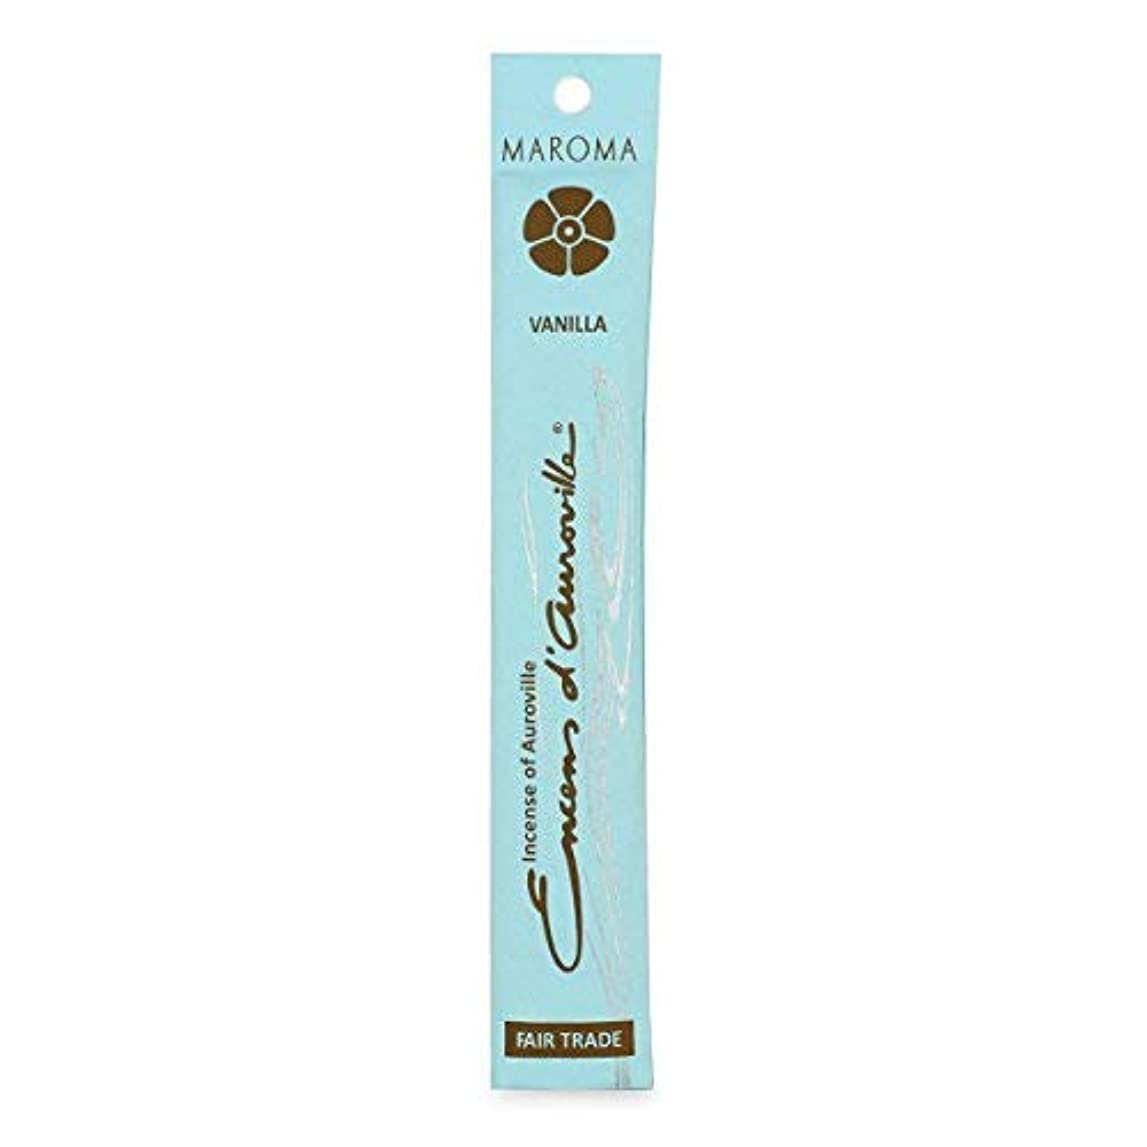 Maroma Vanilla Incense 10 sticks [並行輸入品]